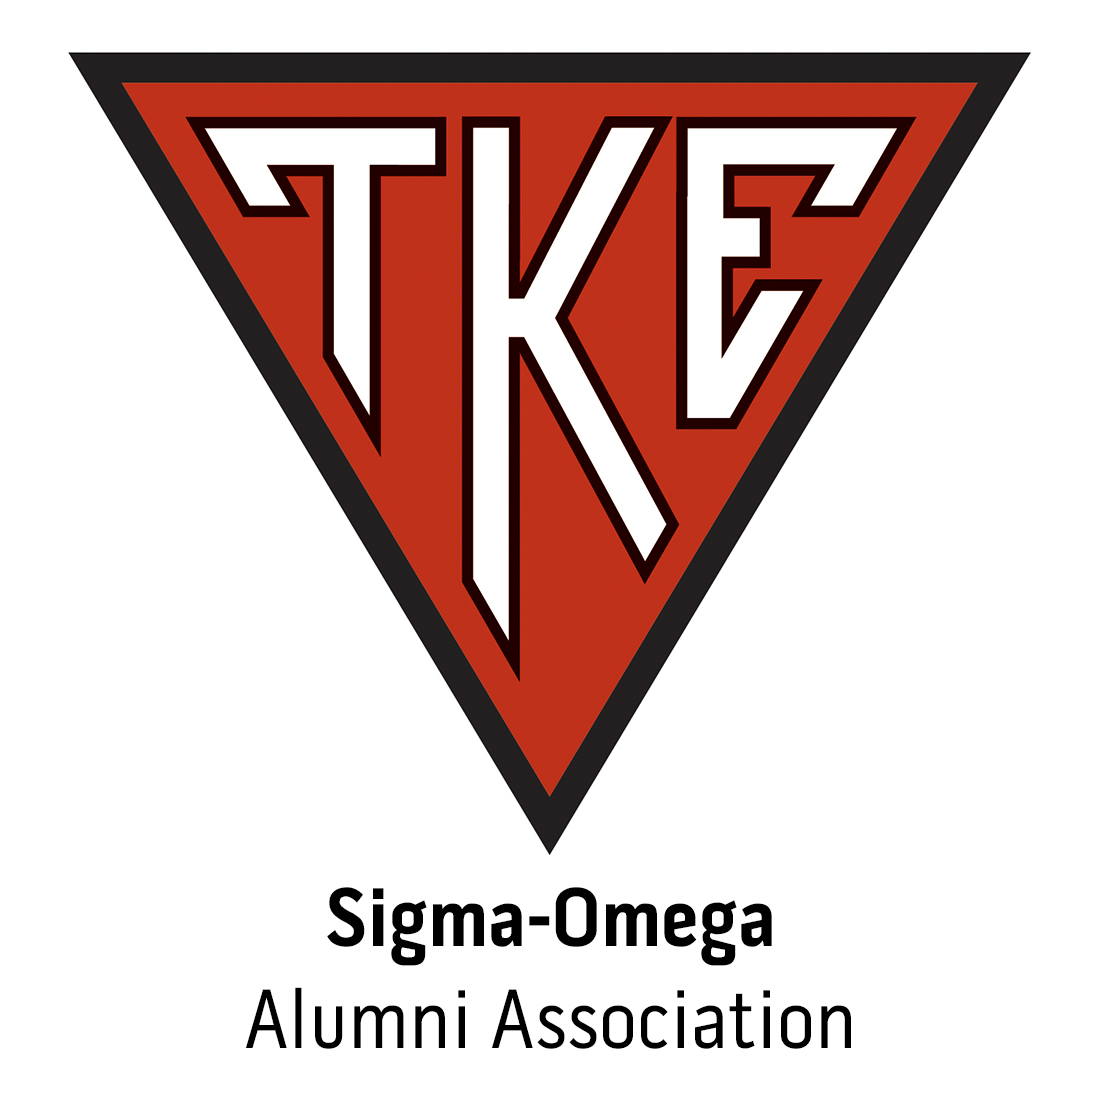 Sigma-Omega Alumni Association at U of Tennesse at Chattanooga